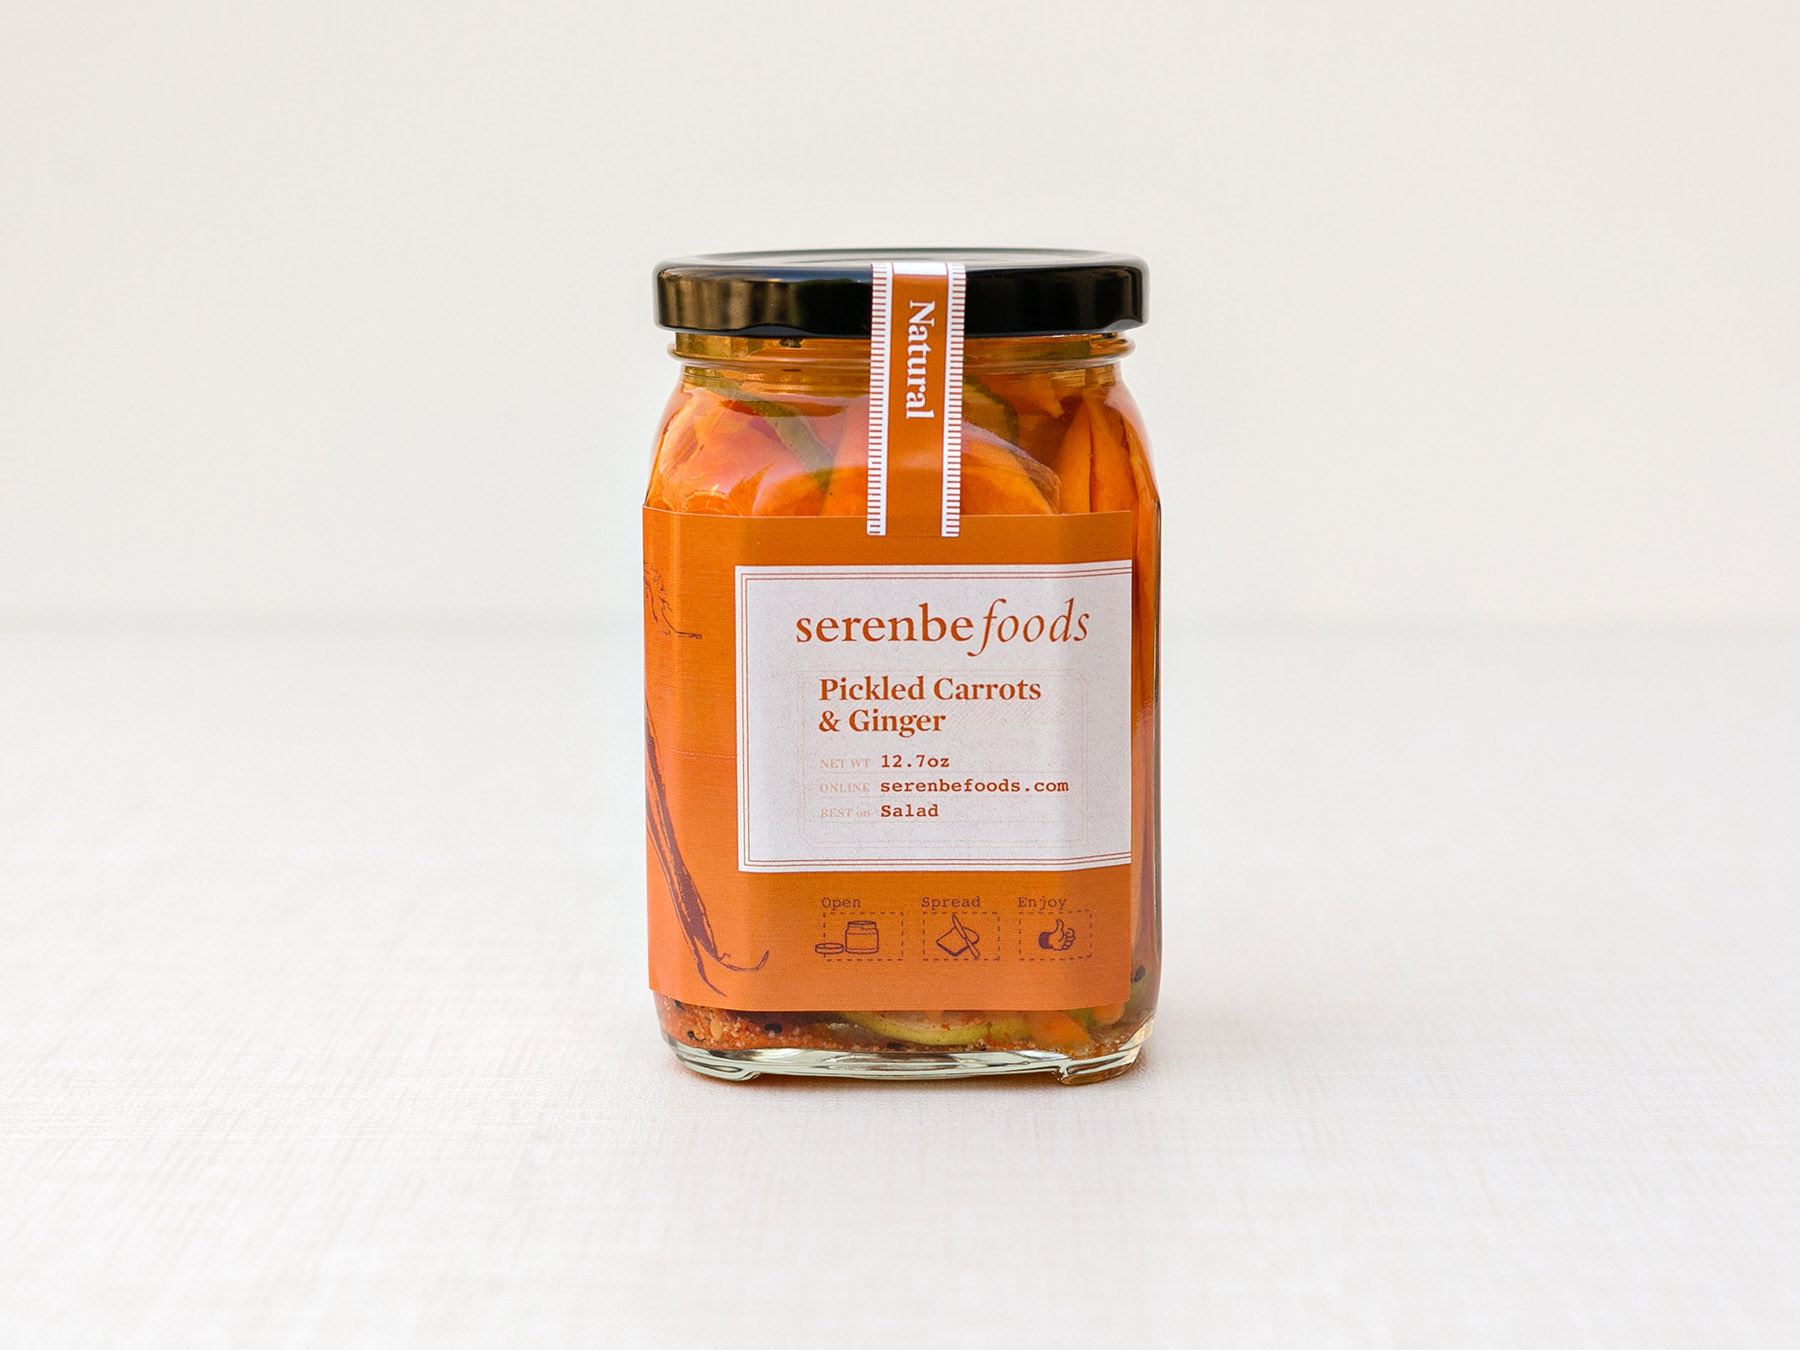 Serenbe Foods pickled carrots giner label design